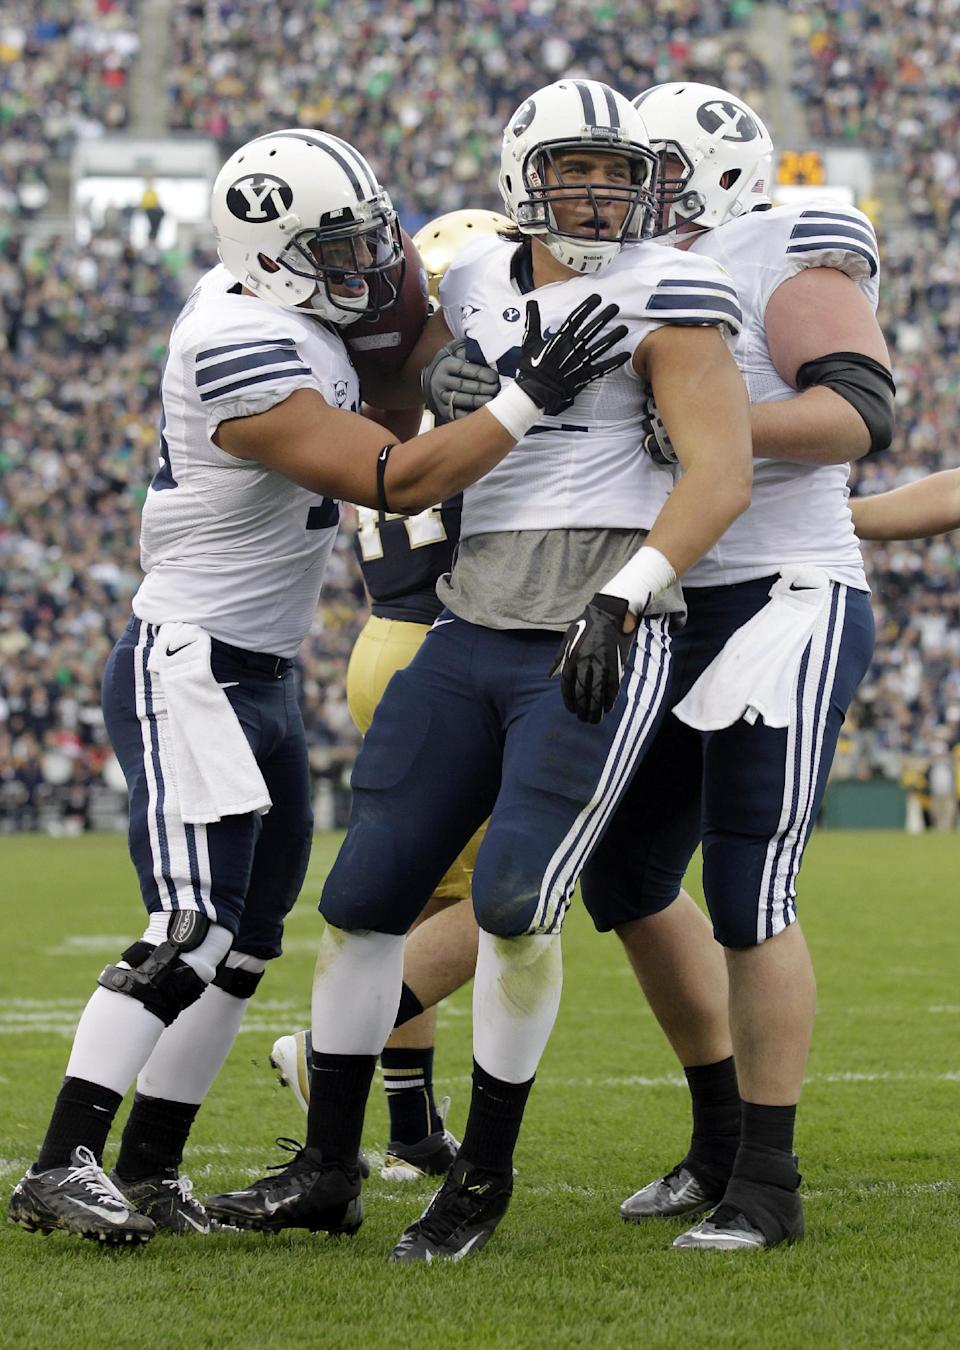 Brigham Young tight end Kaneakua Friel, center, celebrates a touchdown with tight end Richard Wilson, left, and offensive linesman Braden Hansen during the first half of an NCAA college football game against Notre Dame in South Bend, Ind., Saturday, Oct. 20, 2012. (AP Photo/Michael Conroy)